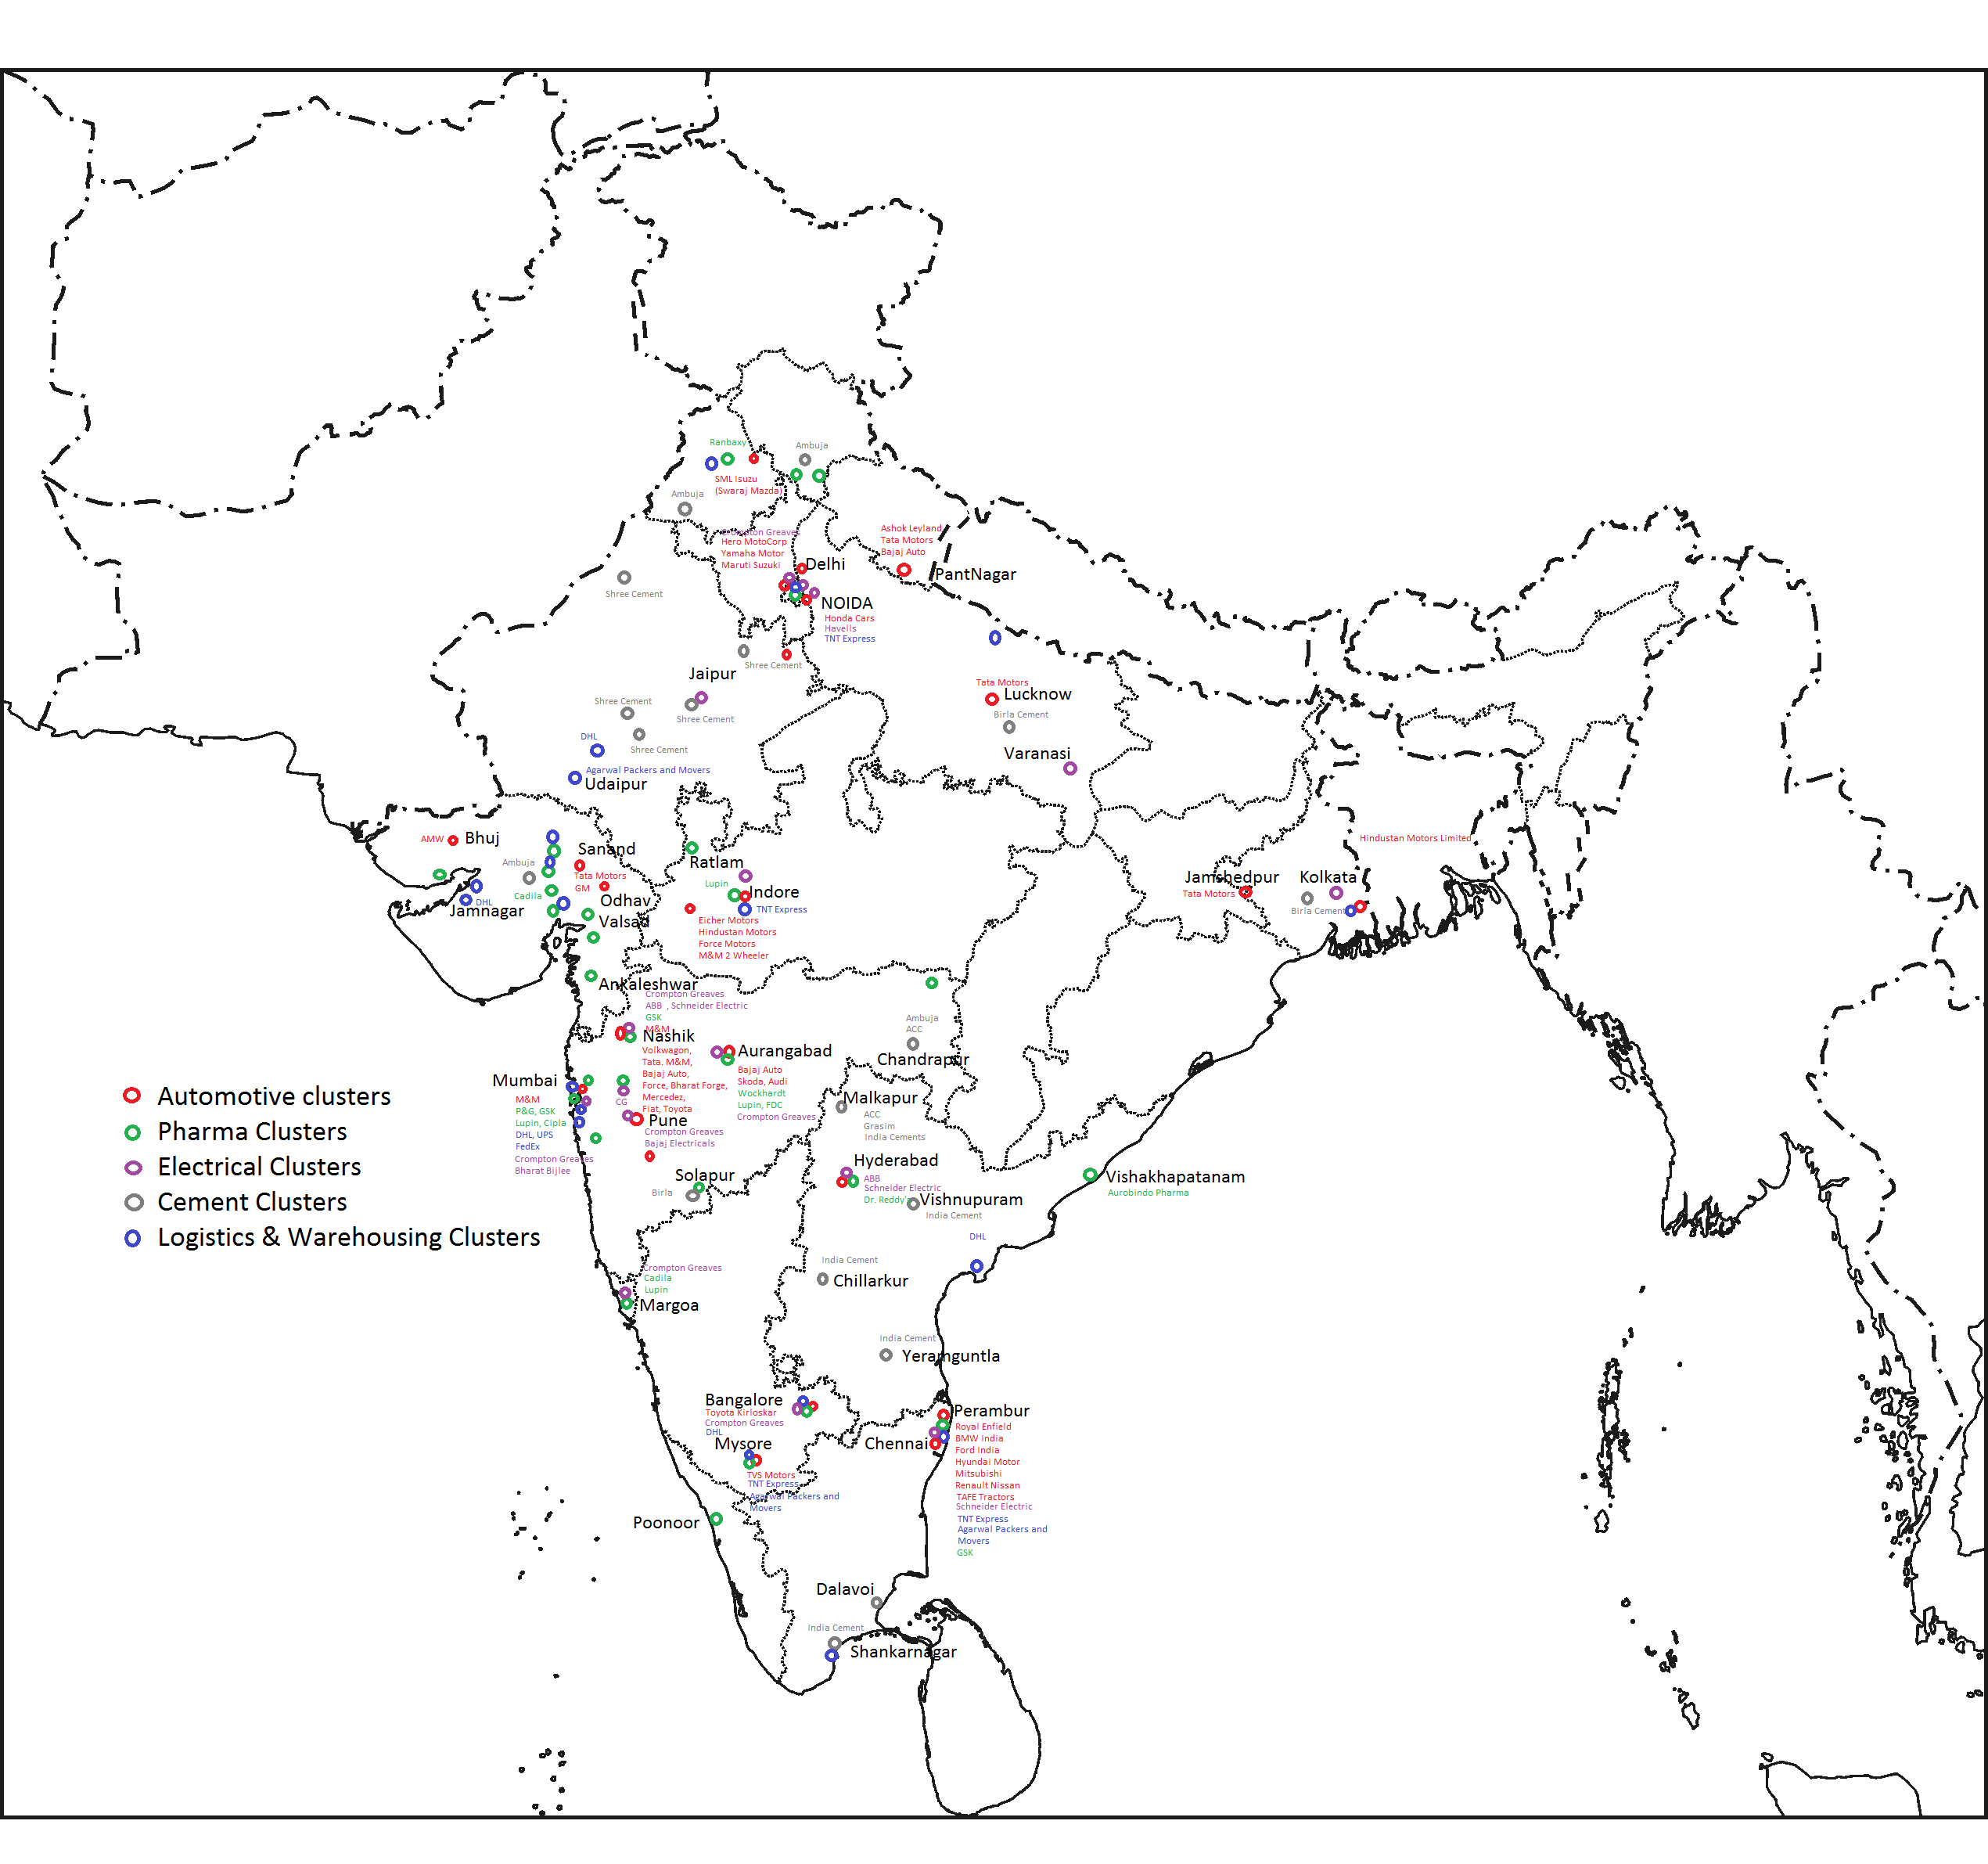 industrial map of india List Of Industrial Centres In India Wikipedia industrial map of india